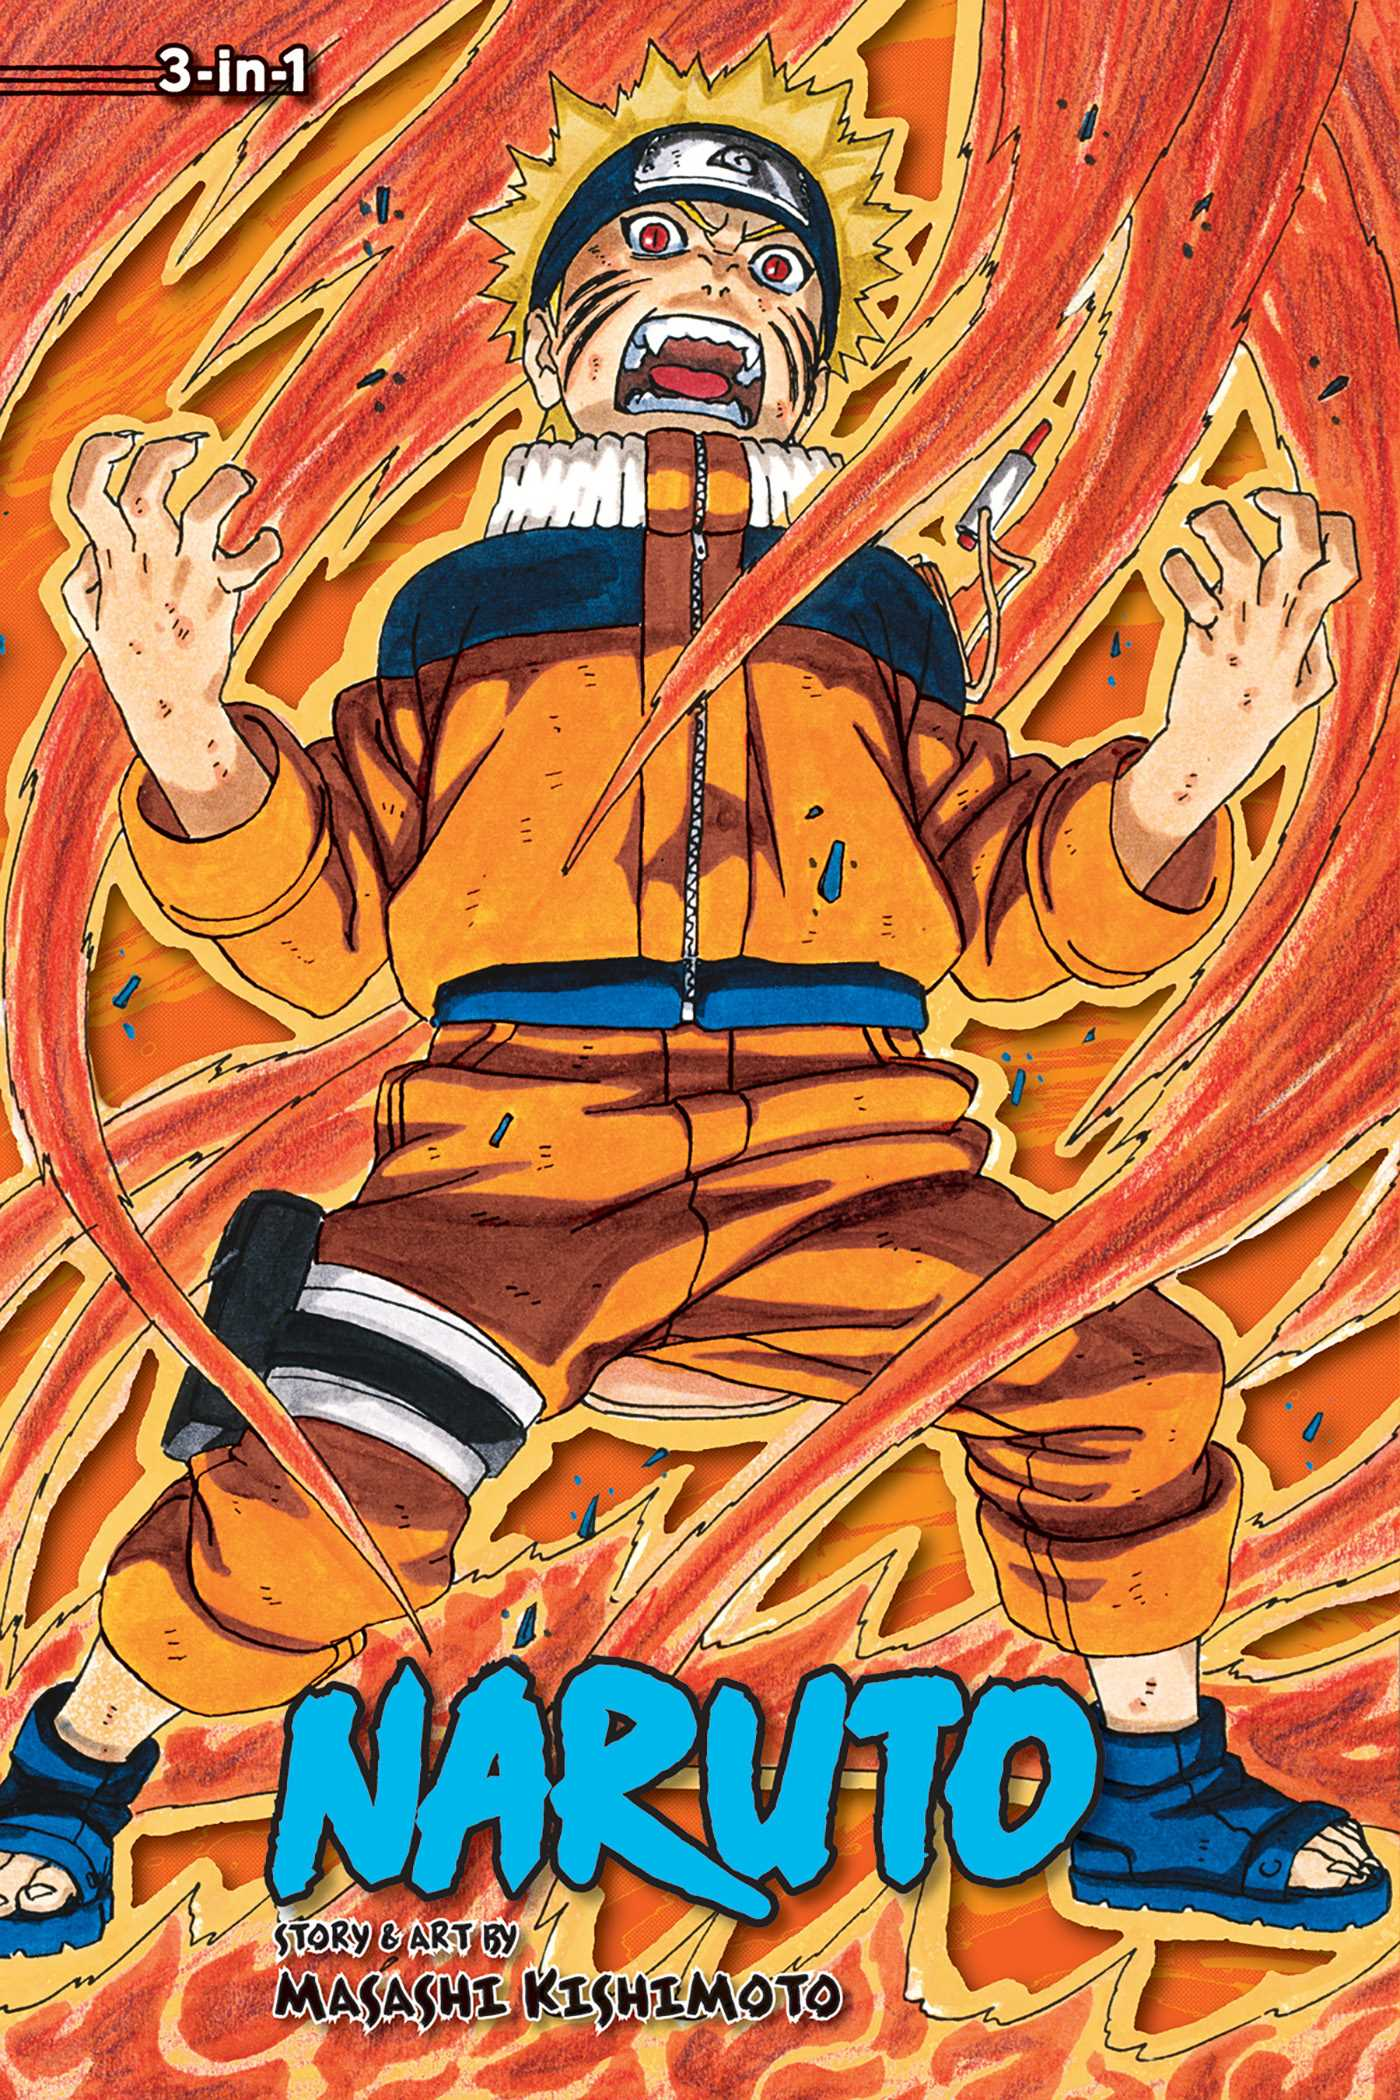 Naruto-3-in-1-edition-vol-9-9781421564753_hr